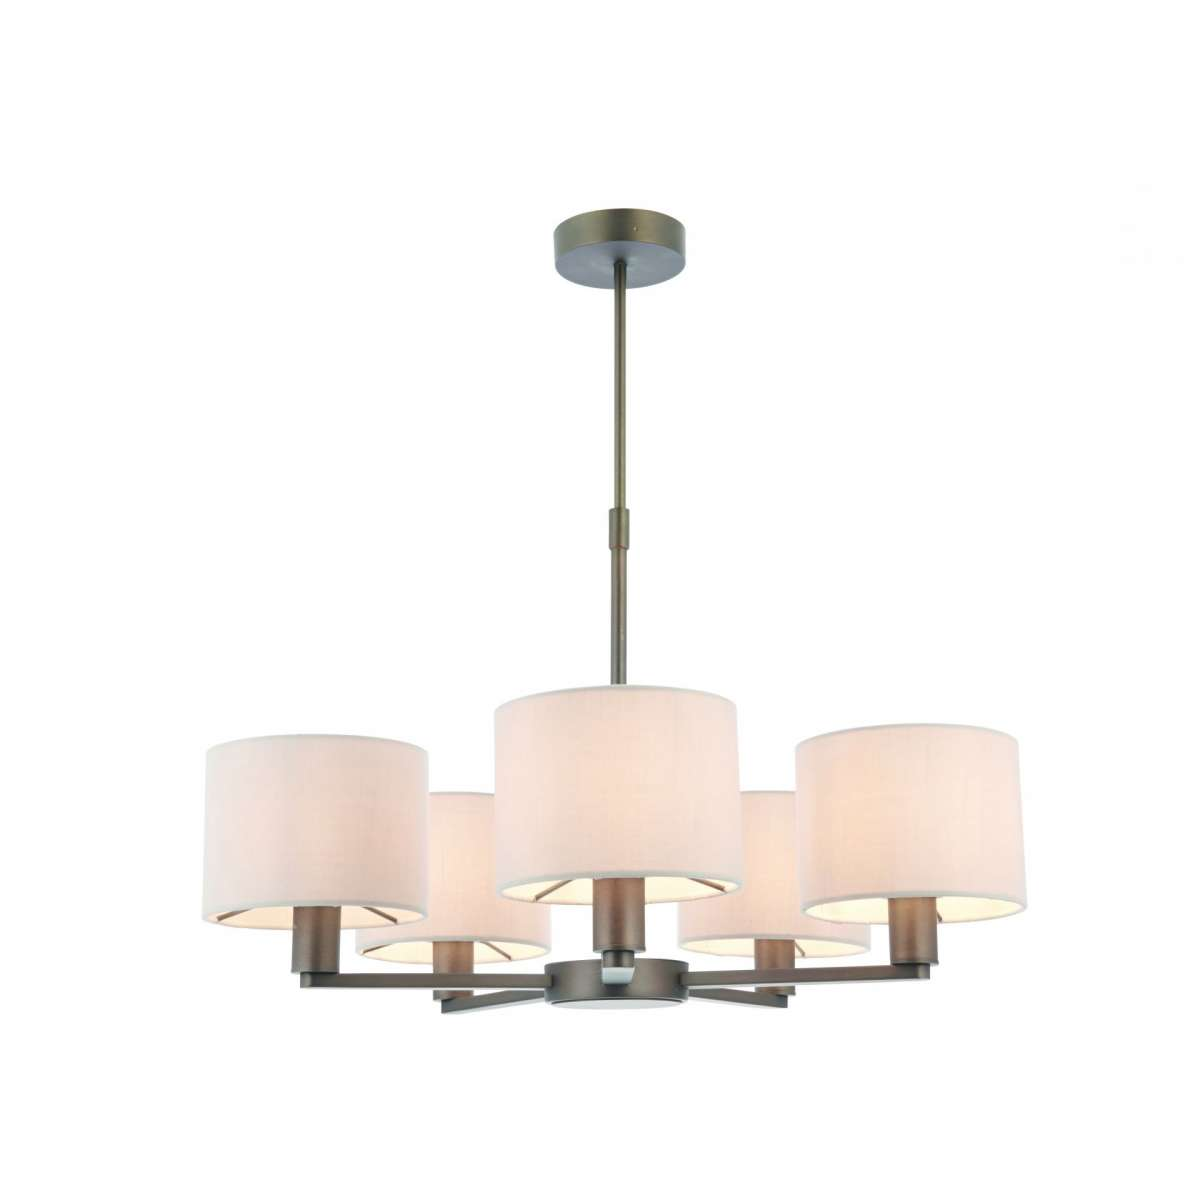 Daley 5 Light Multi Arm Pendant in Bronze C/W Marble Shades